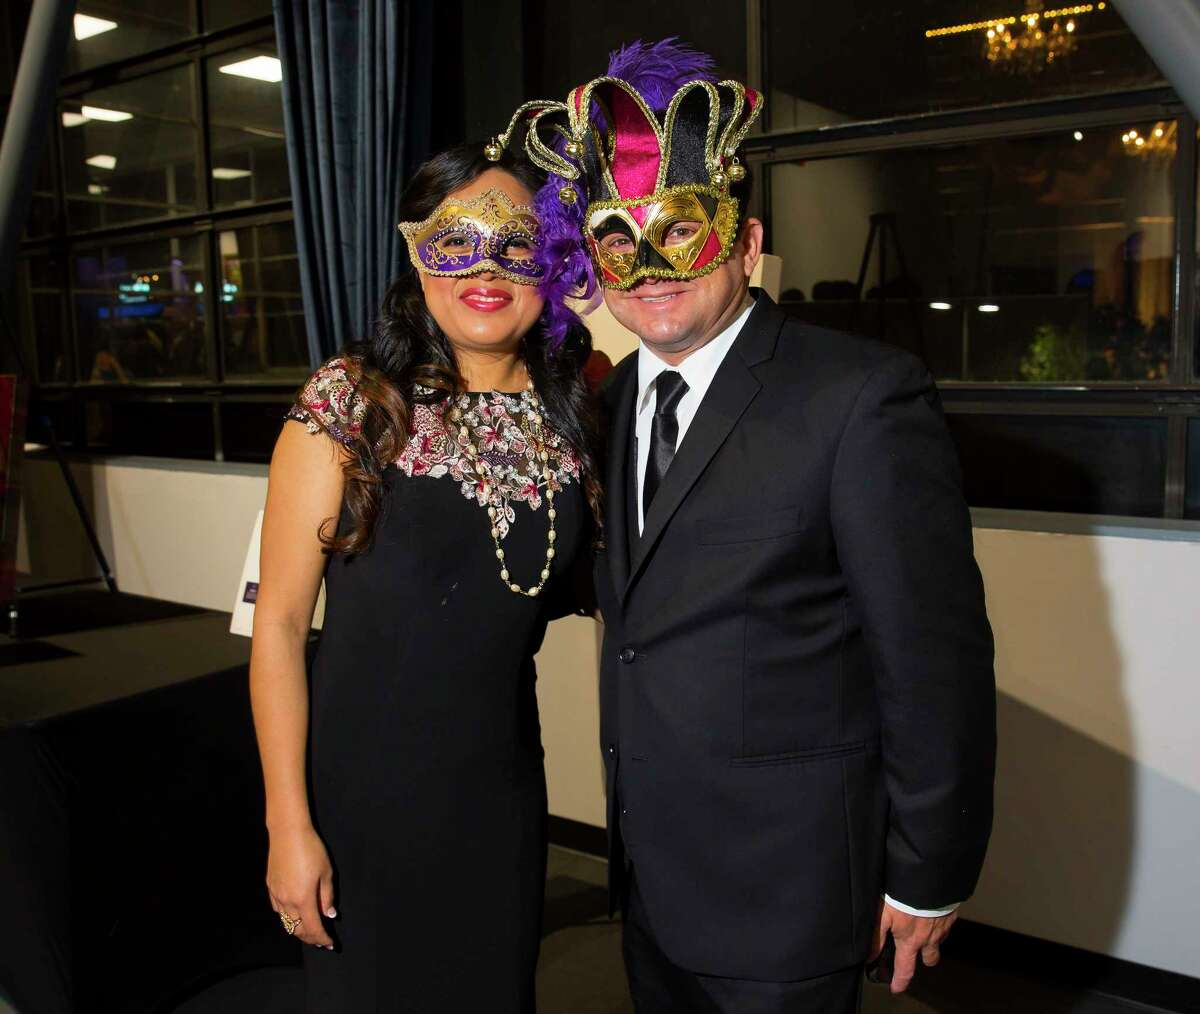 Ofelia and Domenic Laurenzo at the Greater Houston Restaurant Association's Golden Fork Awards Gala downtown on Saturday, Jan. 13, 2018.